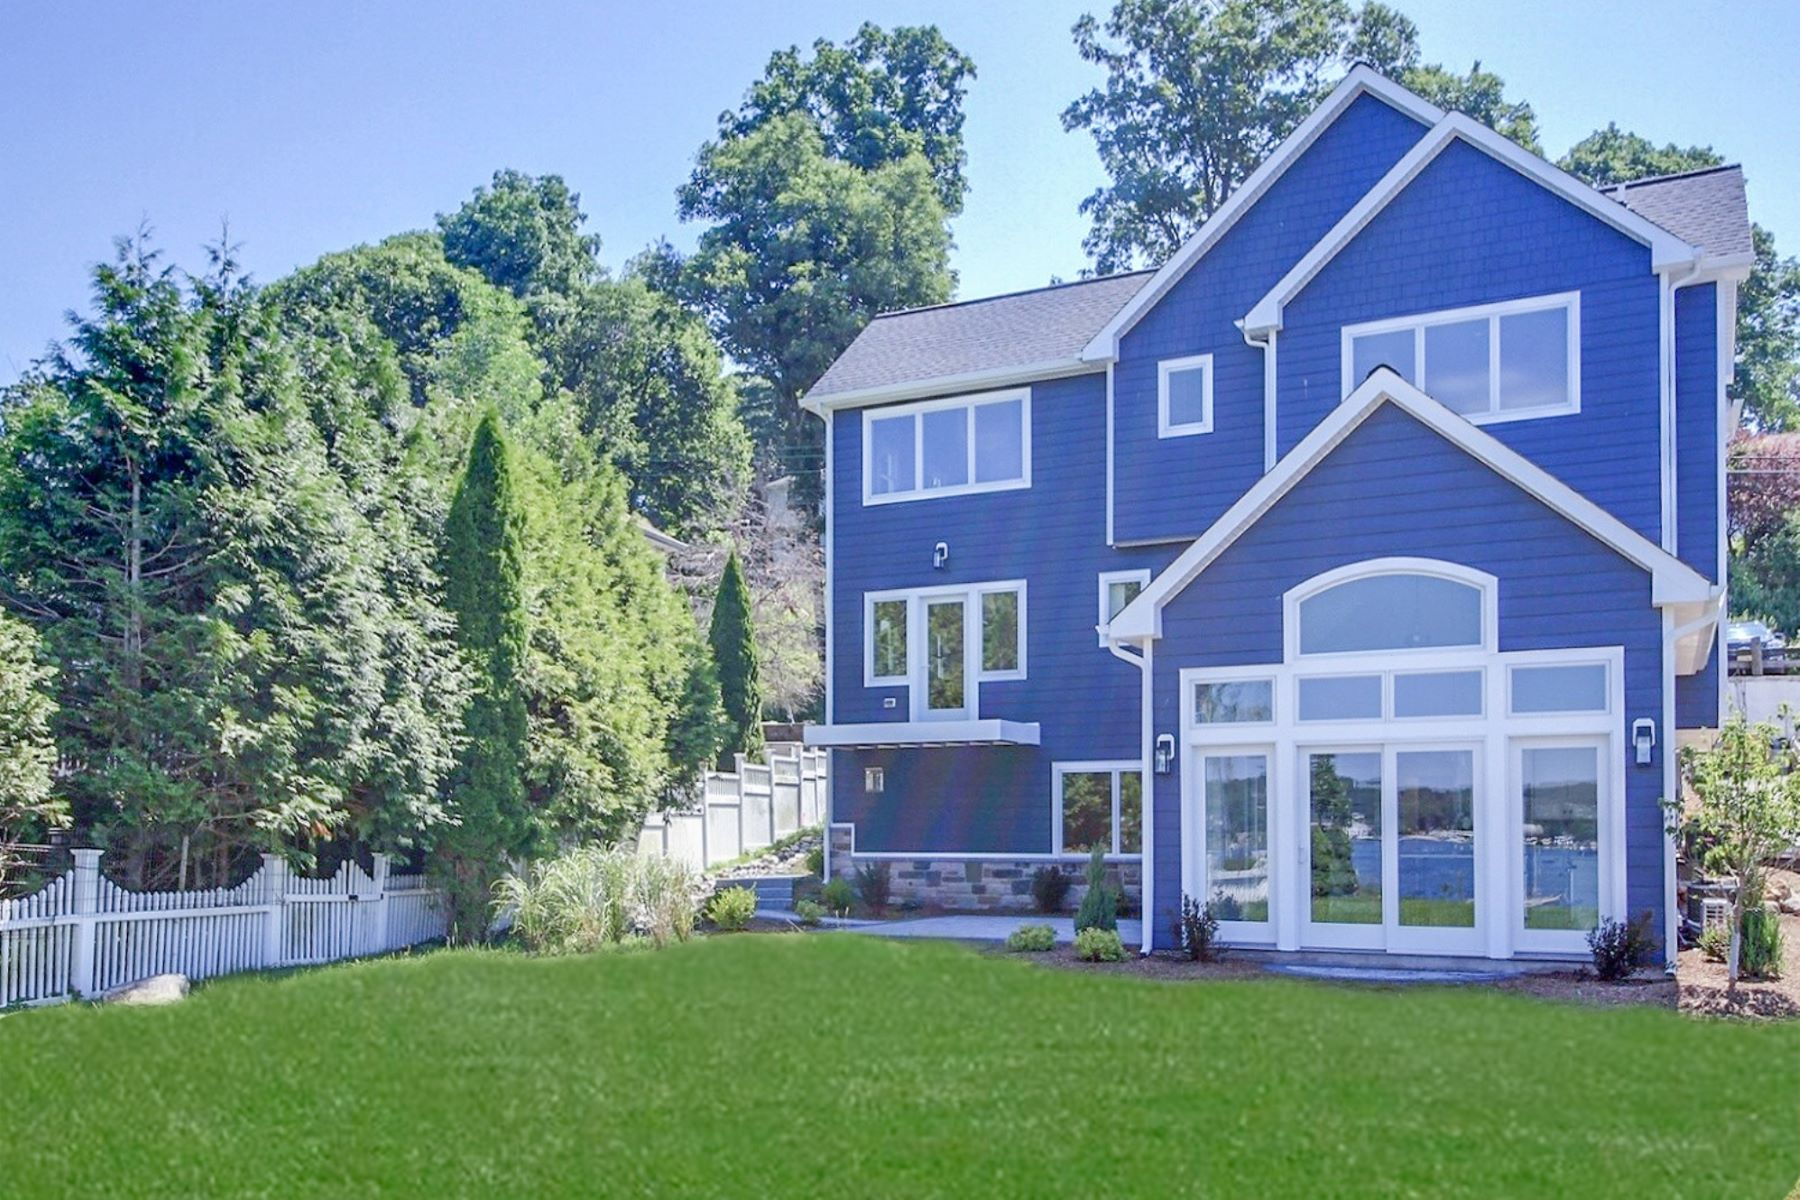 Single Family Homes for Active at New Construction Lake Hopatcong Lakefront 23 Bertrand Island Road Mount Arlington, New Jersey 07856 United States